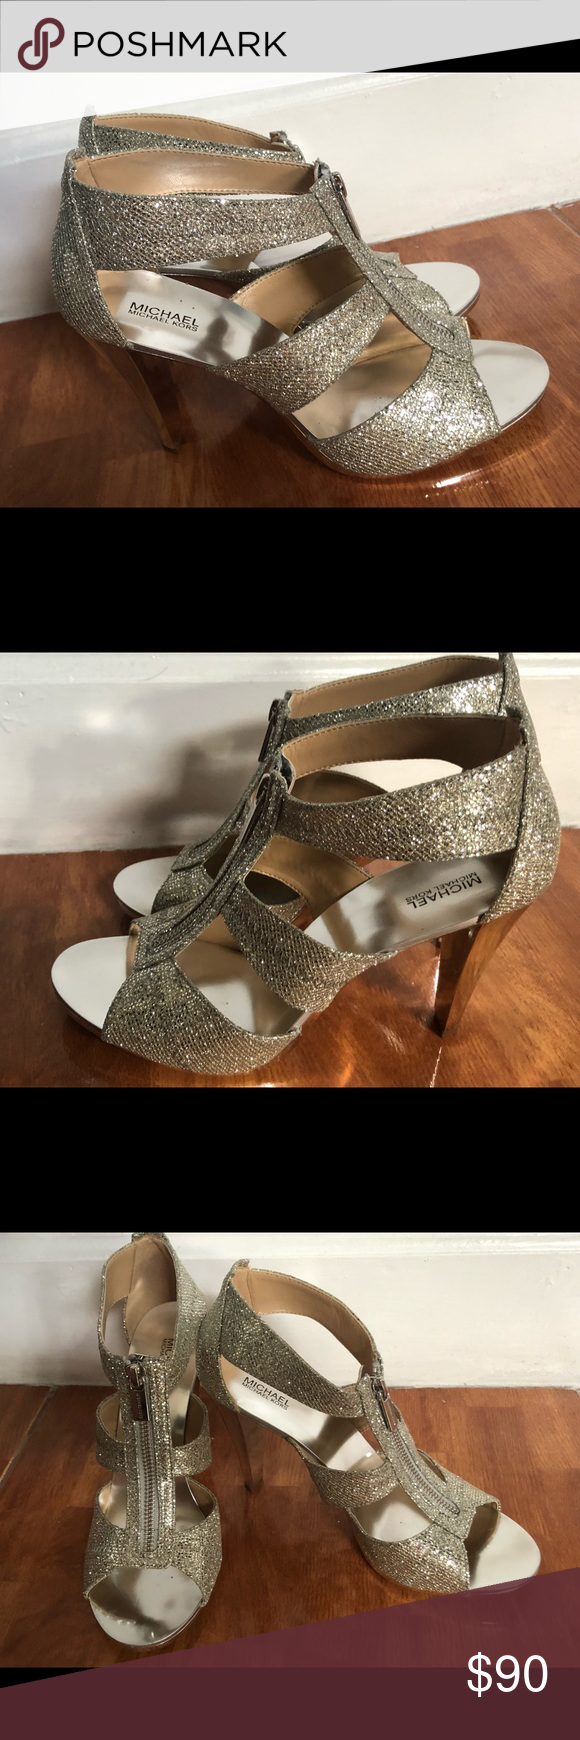 f427202c585 Spotted while shopping on Poshmark  Michael KORS Women Shoes silver Leather  9.5!